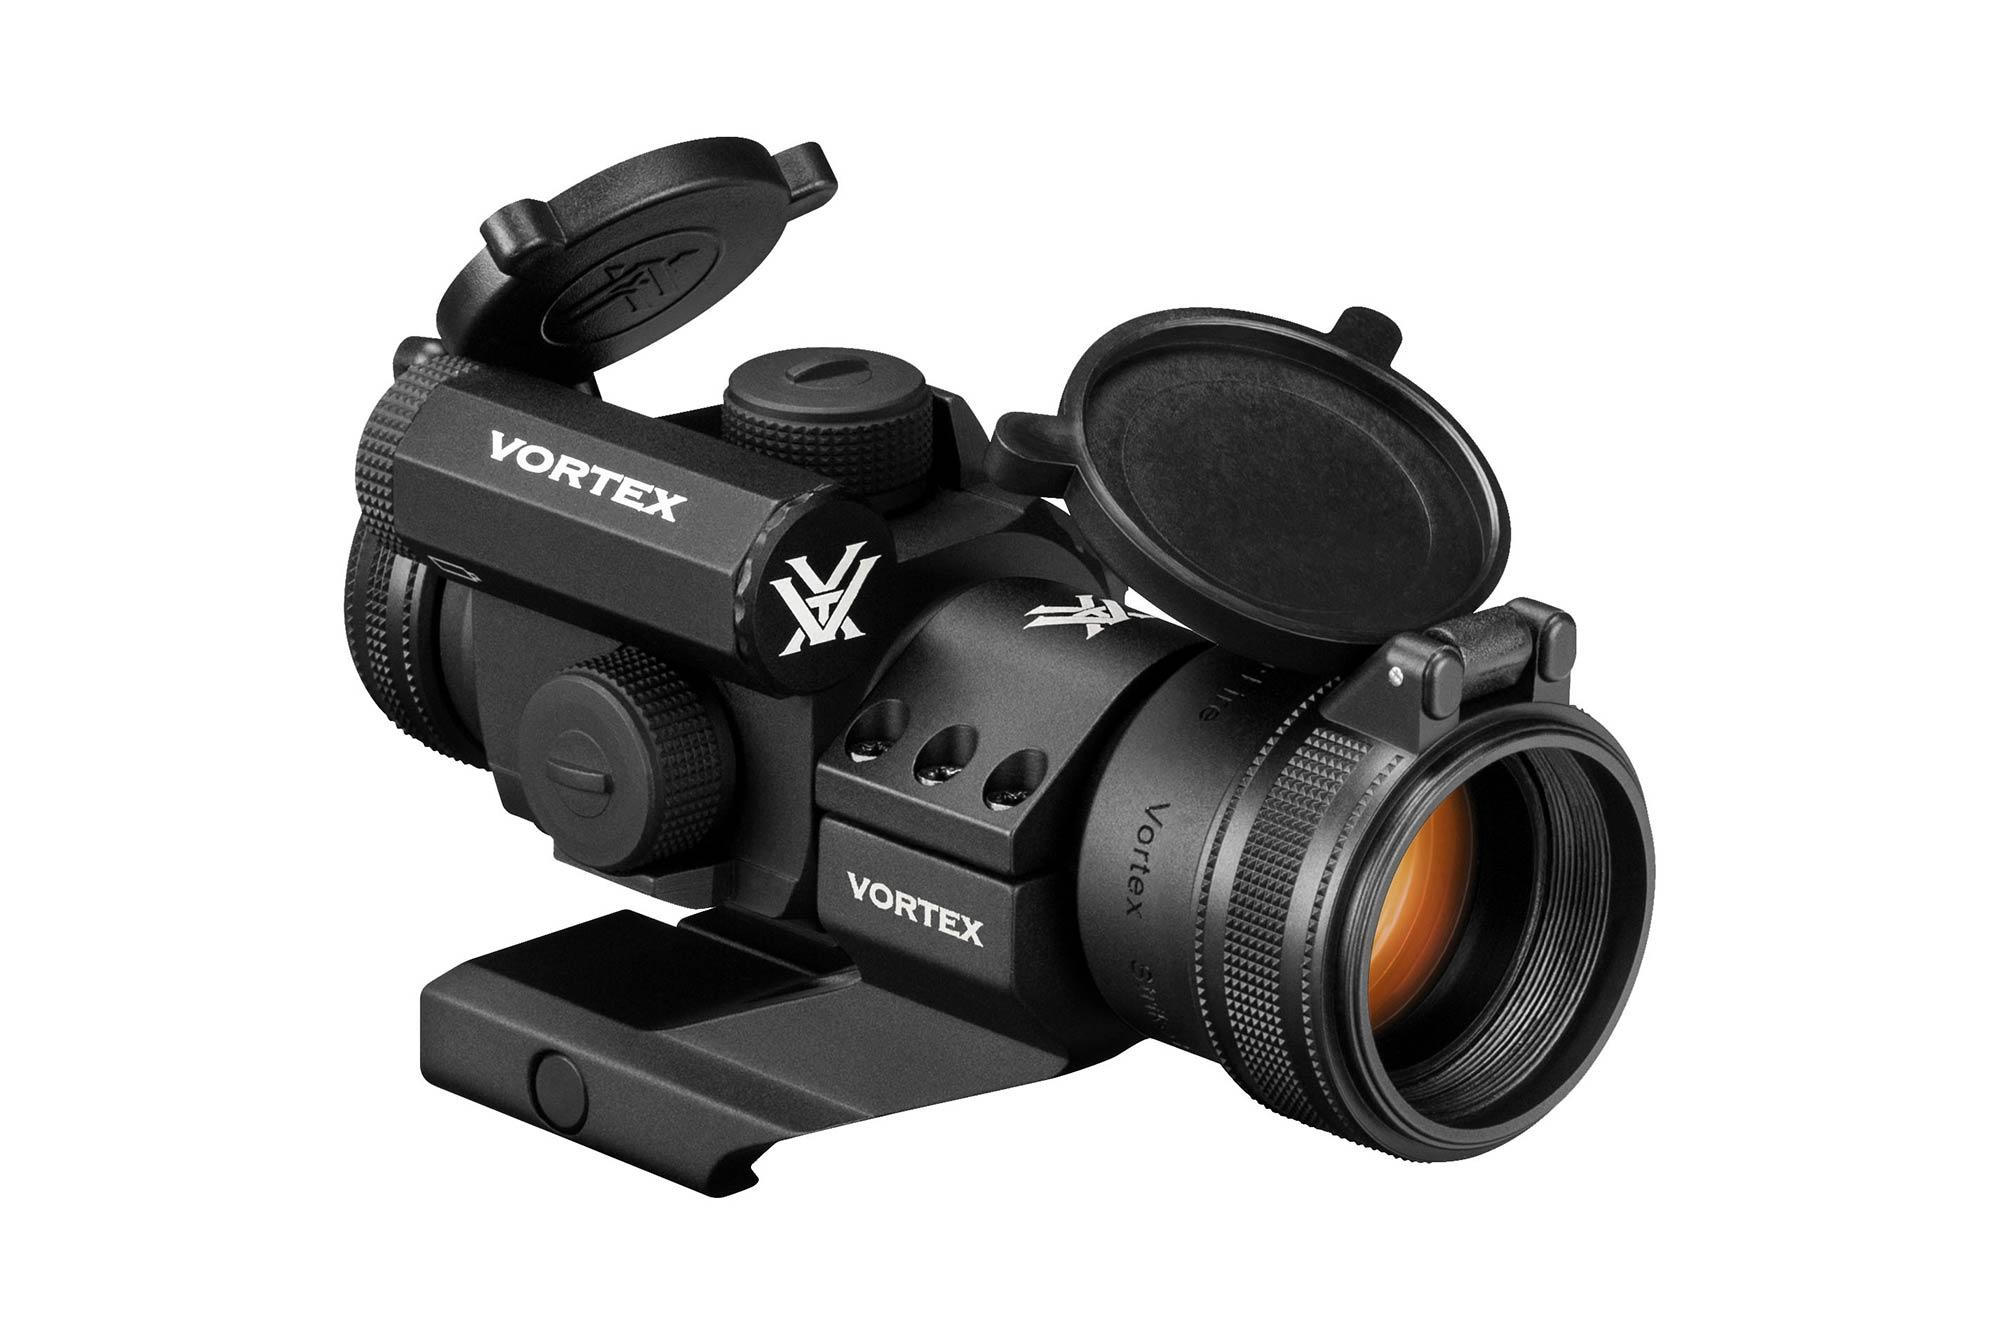 The Vortex StrikeFire II Red Dot Sight is an illuminated optic with cantilever mount for attaching to you ar15 flat top upper